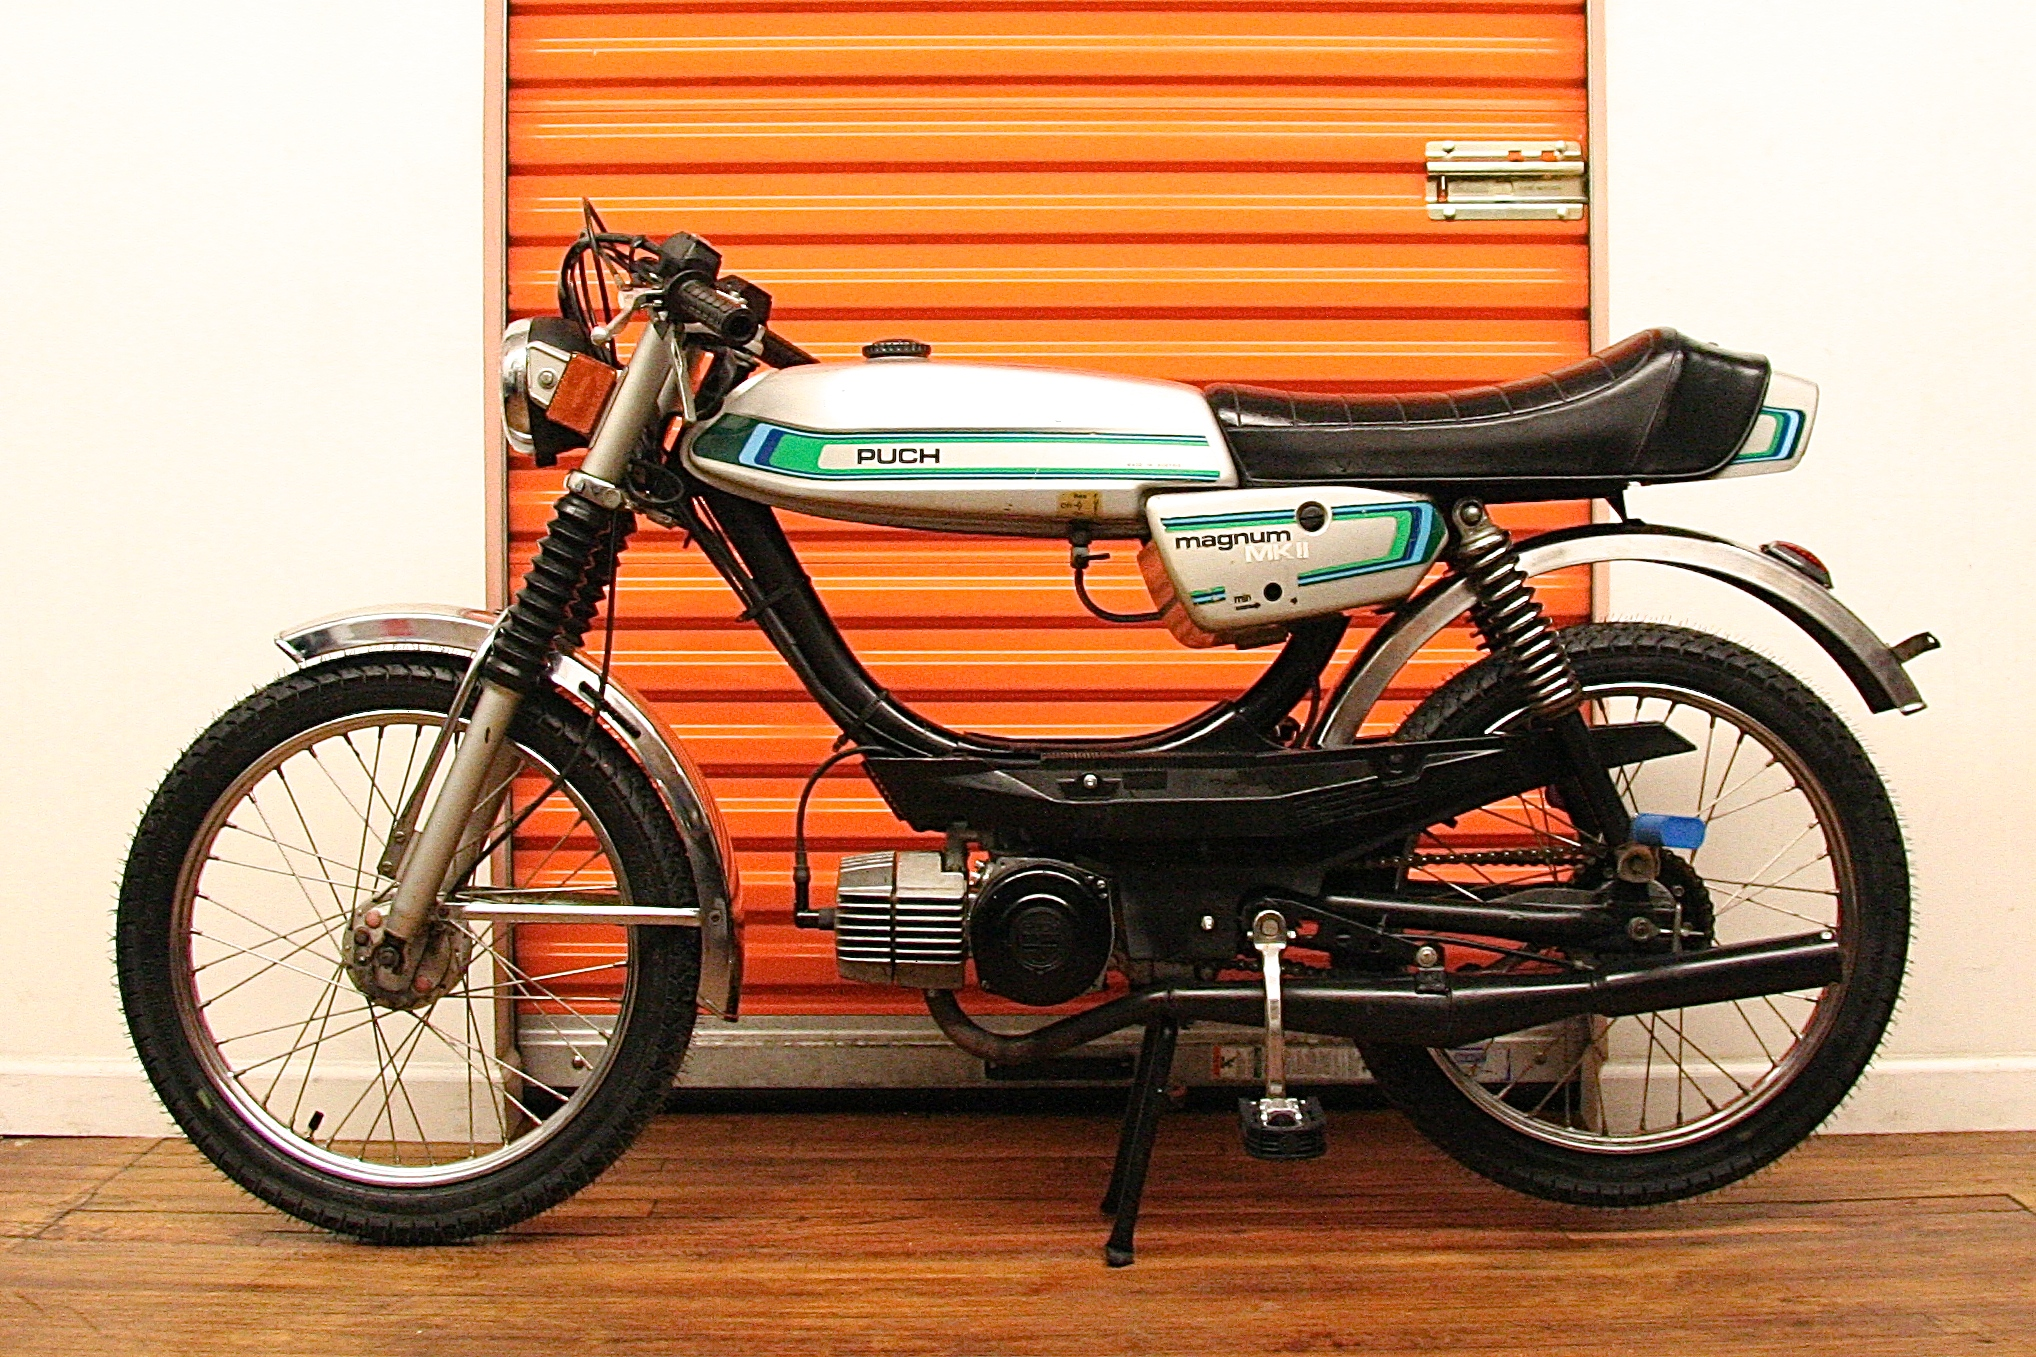 1978 Puch Magnum MKII